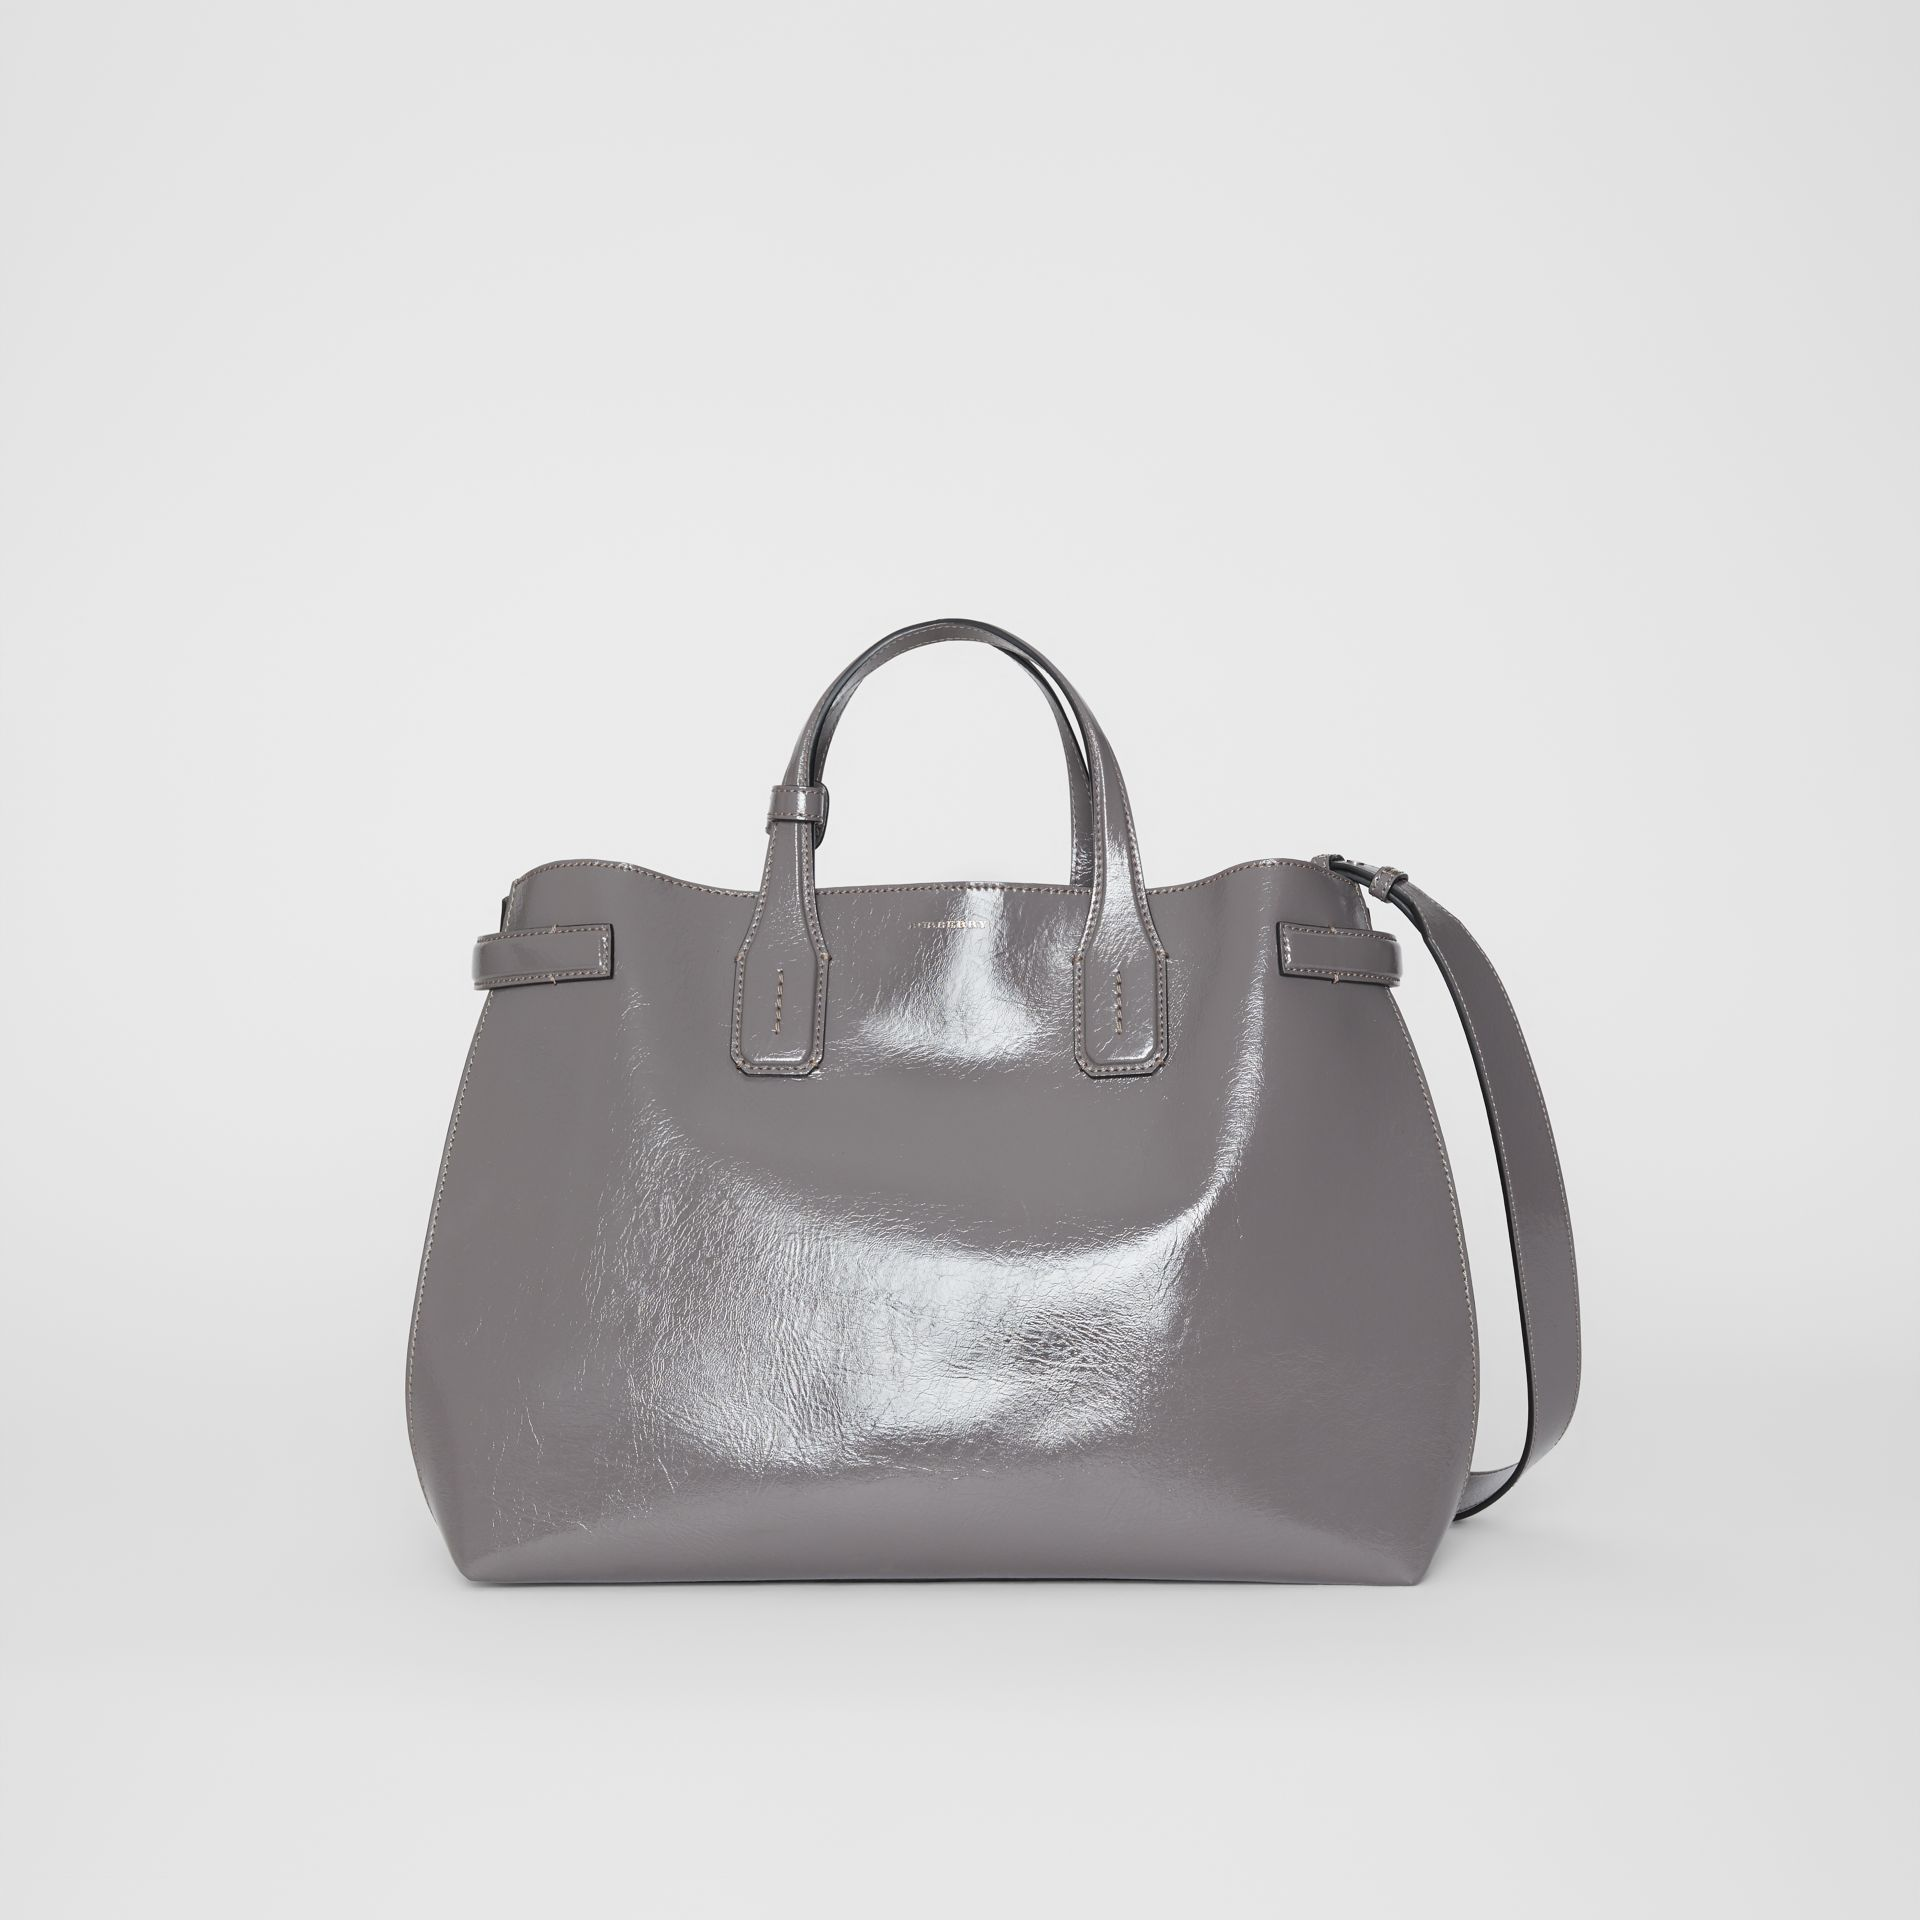 Burberry The Medium Soft Leather Banner In Sepia Grey   ModeSens d54ec1aa75